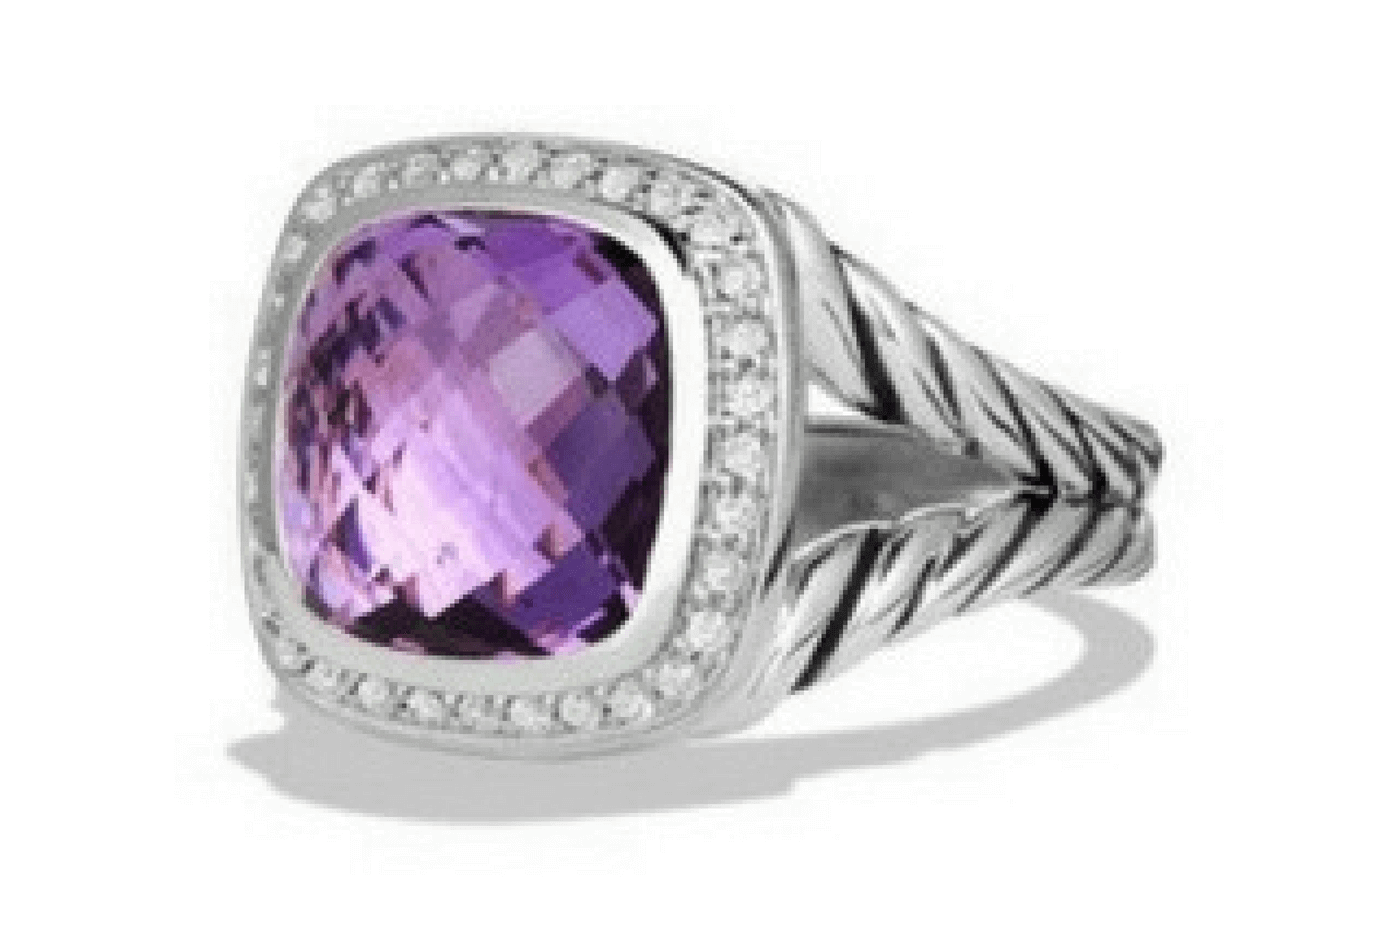 David Yurman Amethyst and Diamonds Ring. Source: Nordstrom.